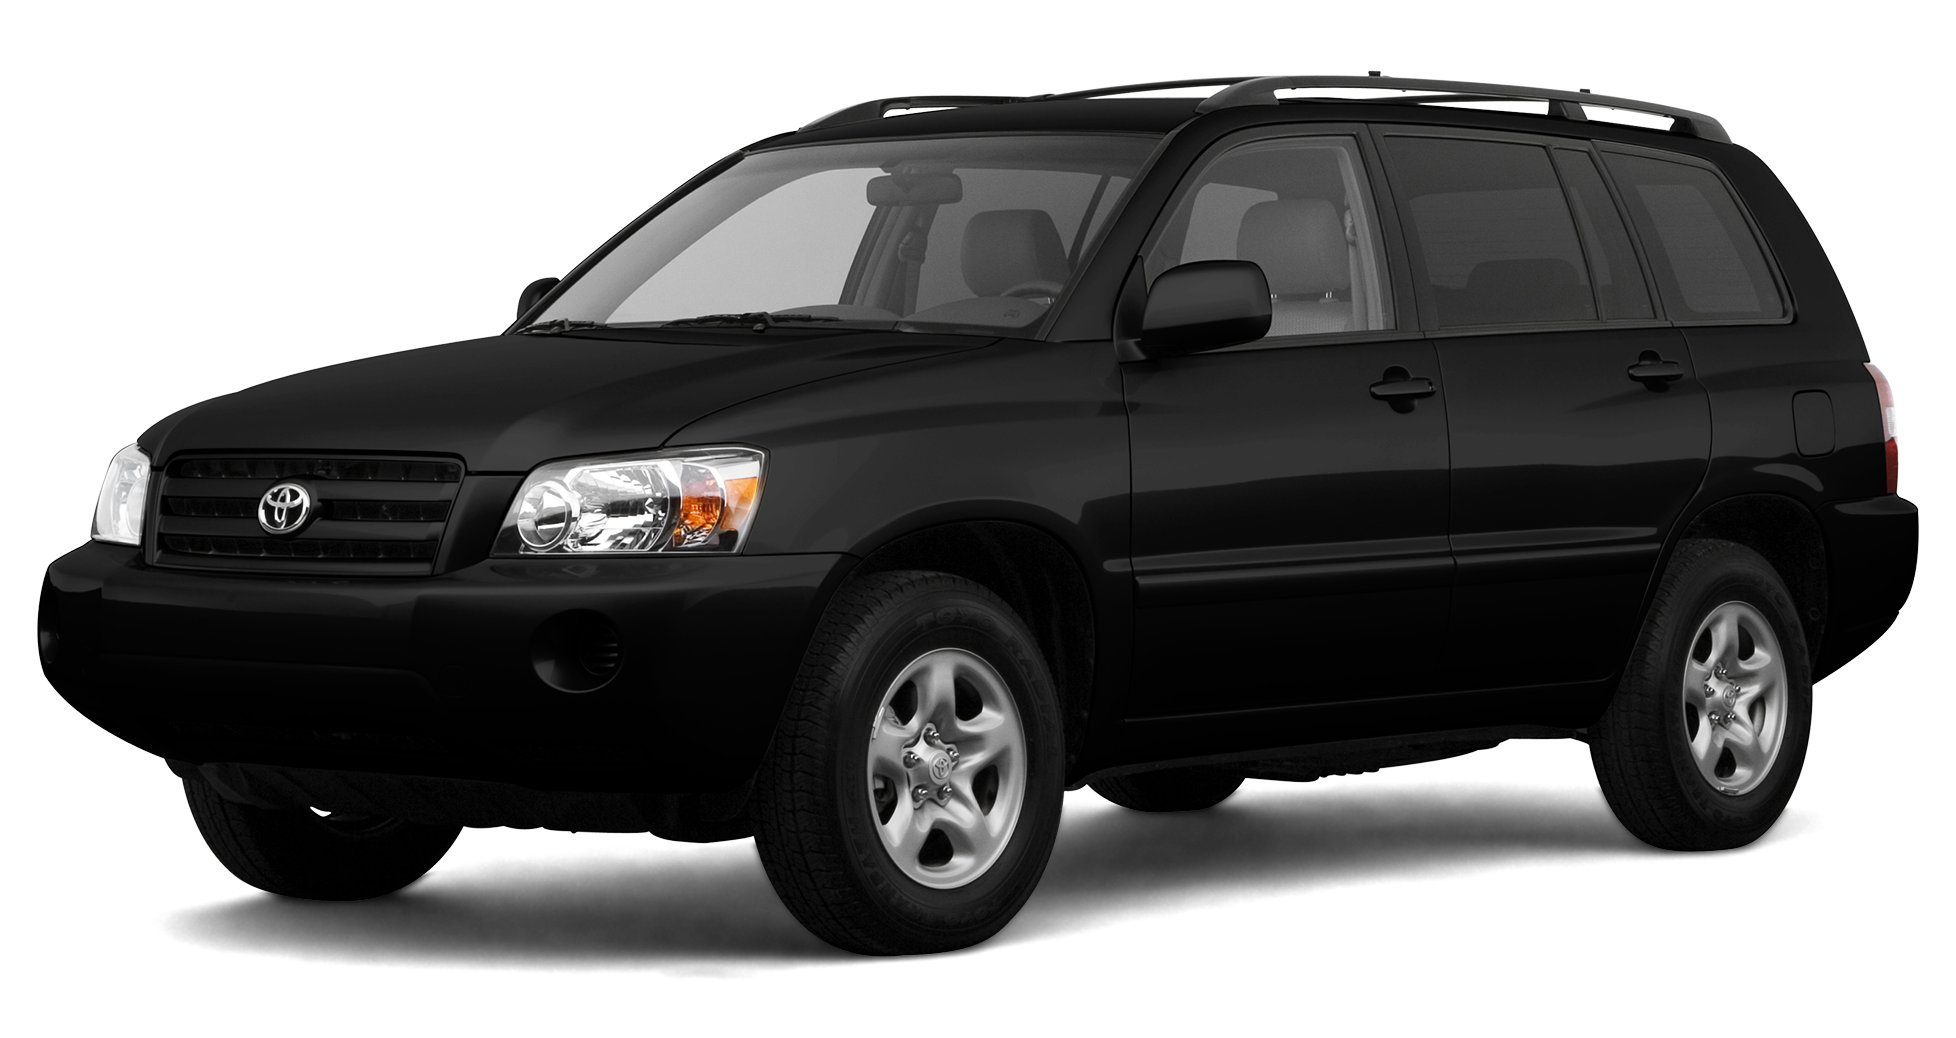 2007 ford escape reviews images and specs. Black Bedroom Furniture Sets. Home Design Ideas